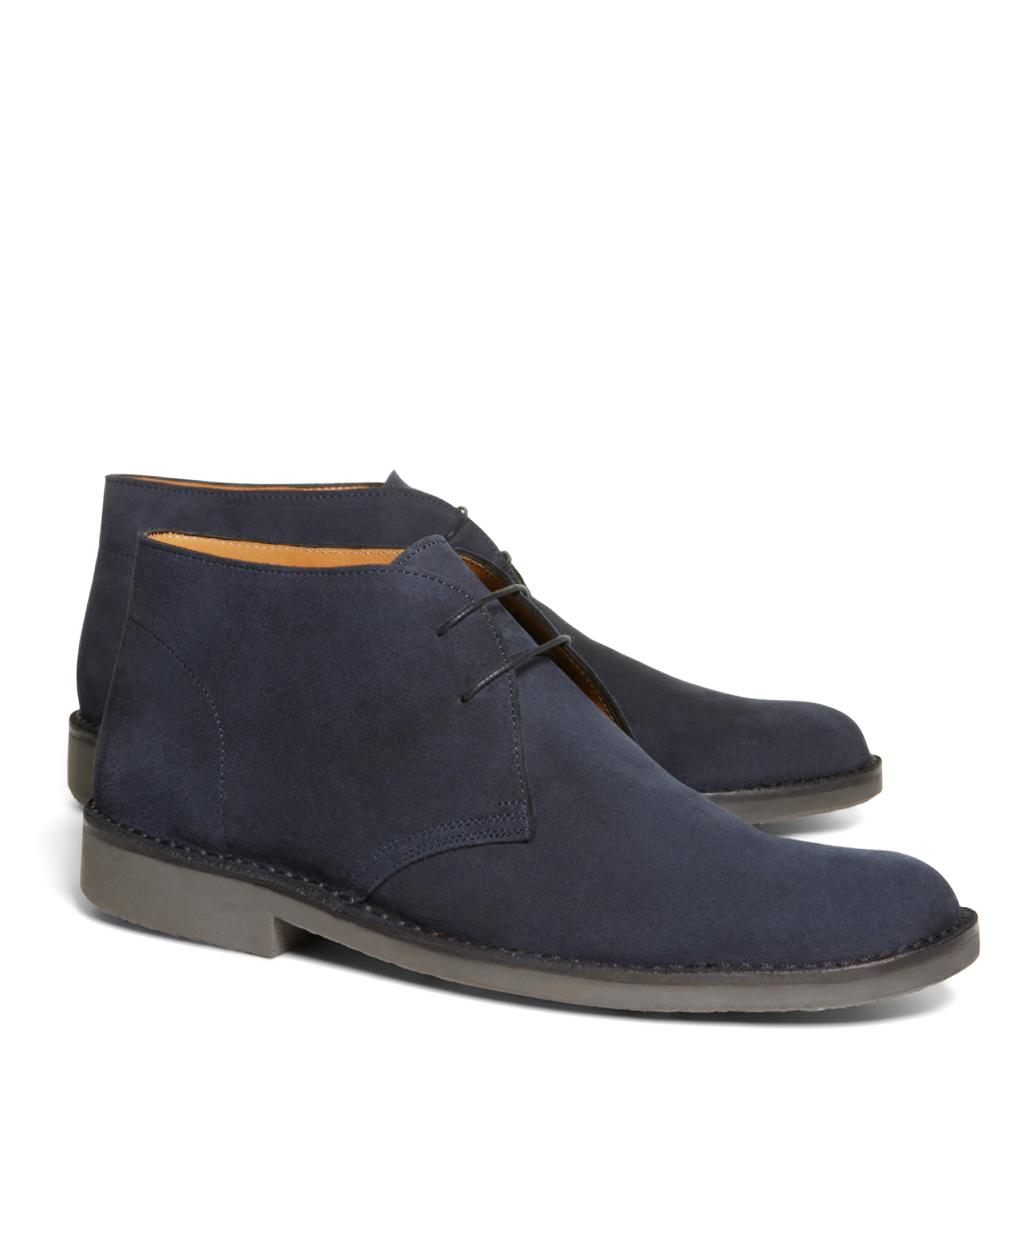 86c60df0aad Lyst - Brooks Brothers Field Chukka Boots in Blue for Men